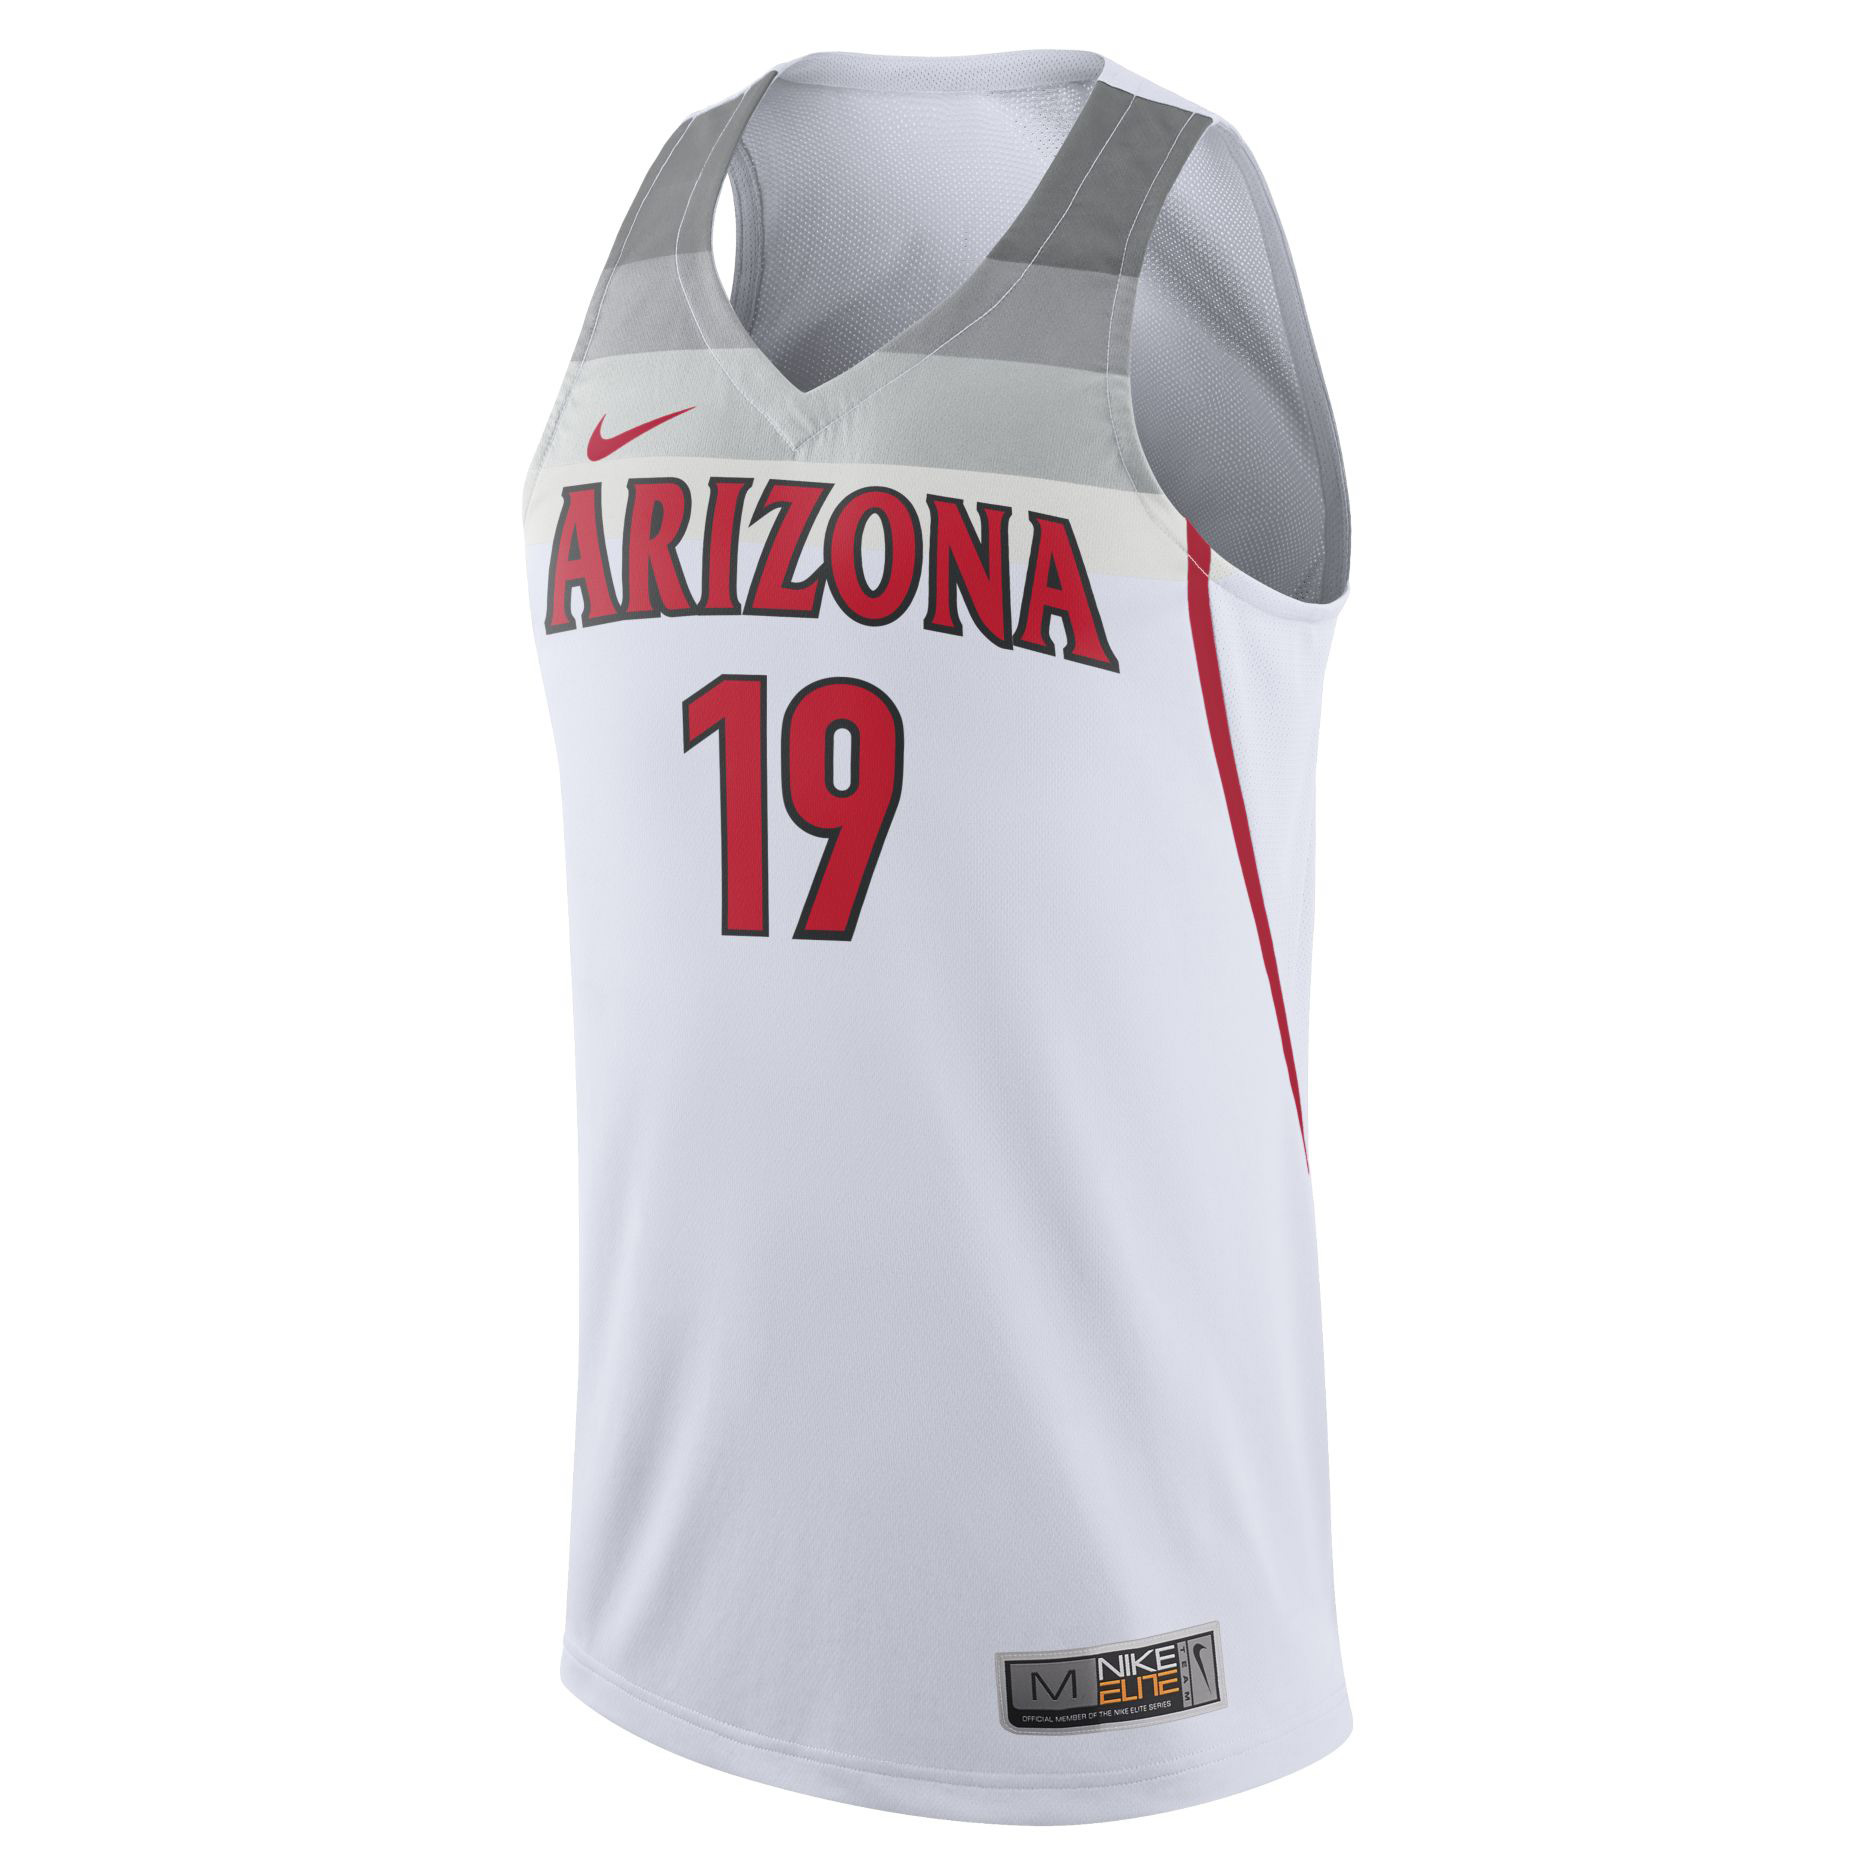 Image For 2019 Arizona Wildcats Basketball Replica Jersey - White